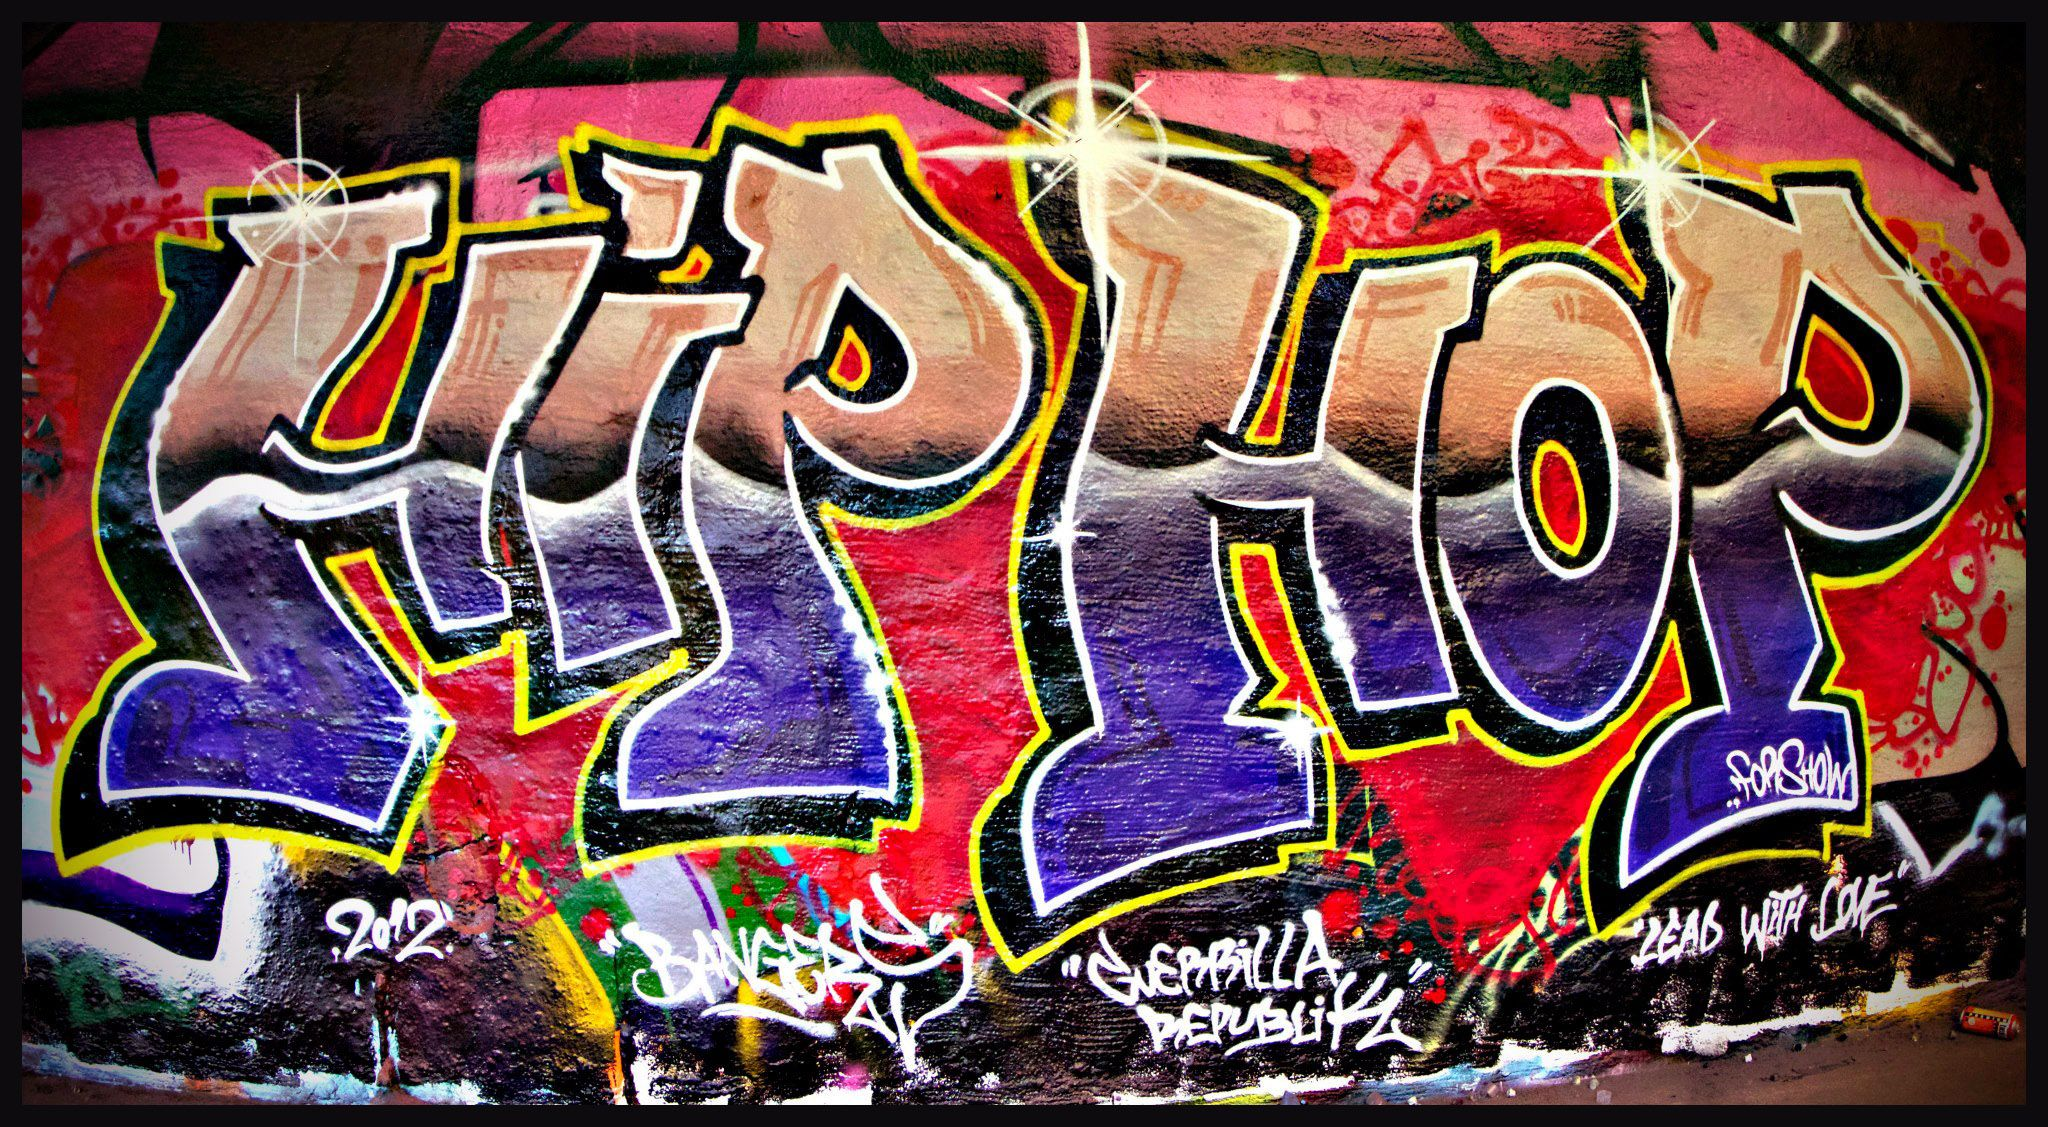 Best Wallpaper Music Graffiti Art - 9dcf6b62ca56d16105e5145d38b4b3a7  HD_245598.jpg